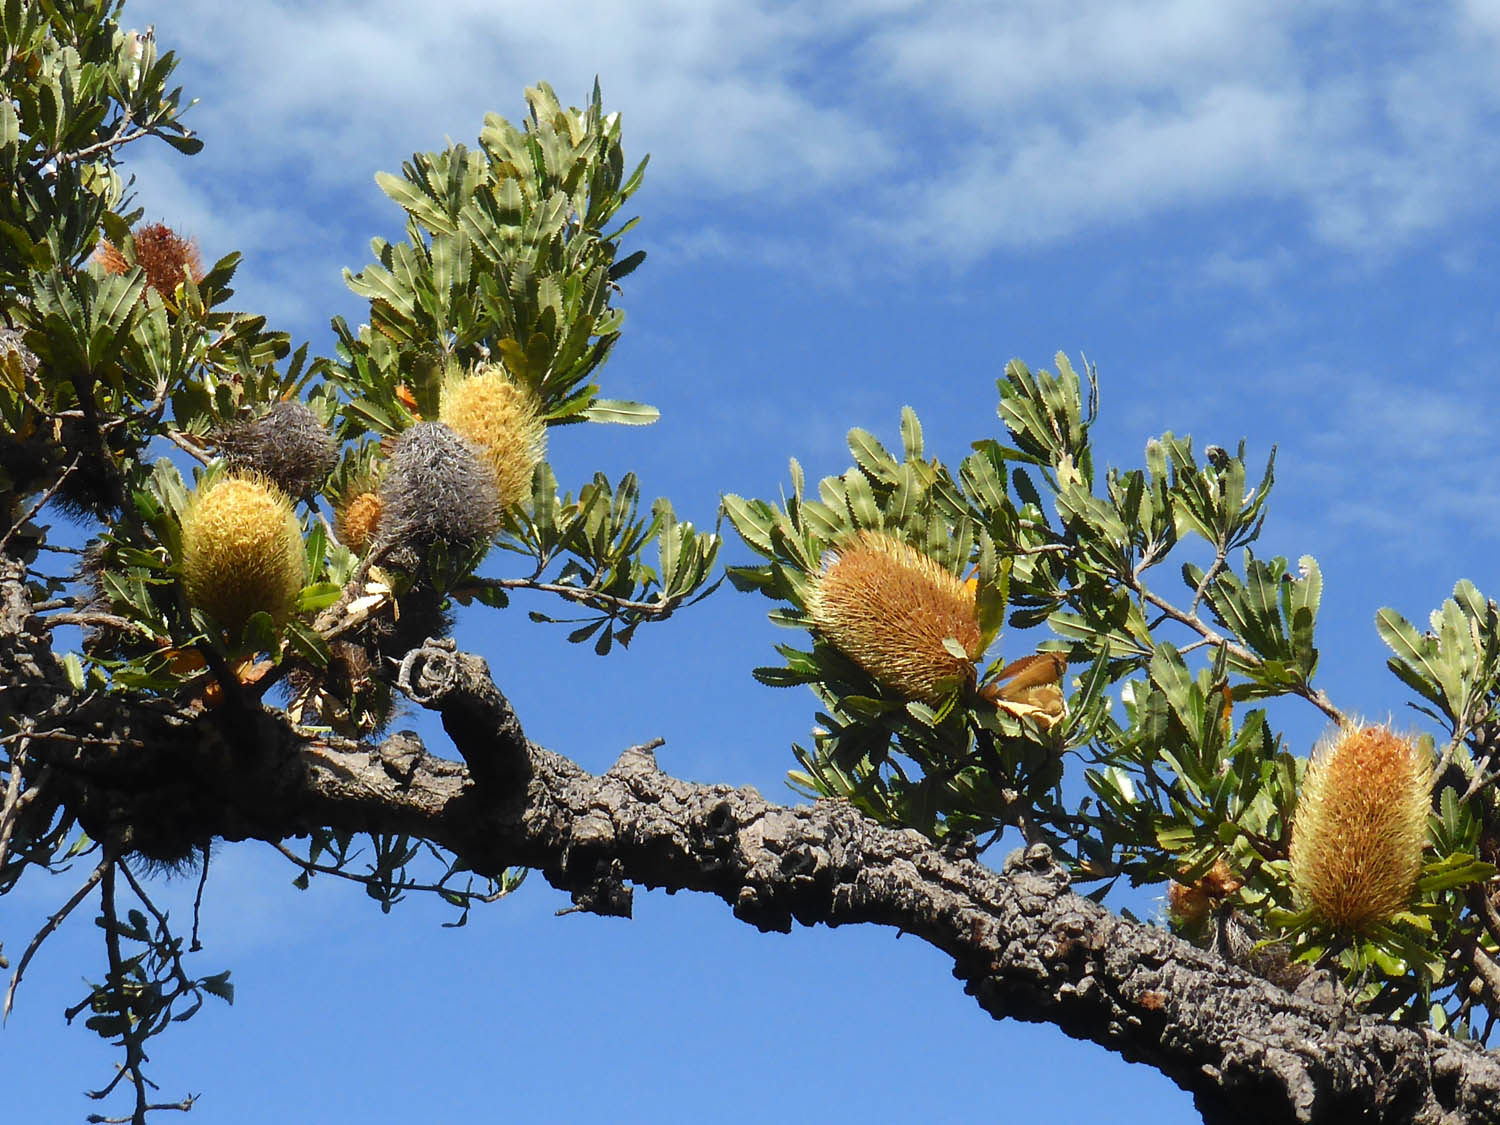 Banksia flowers on a branch